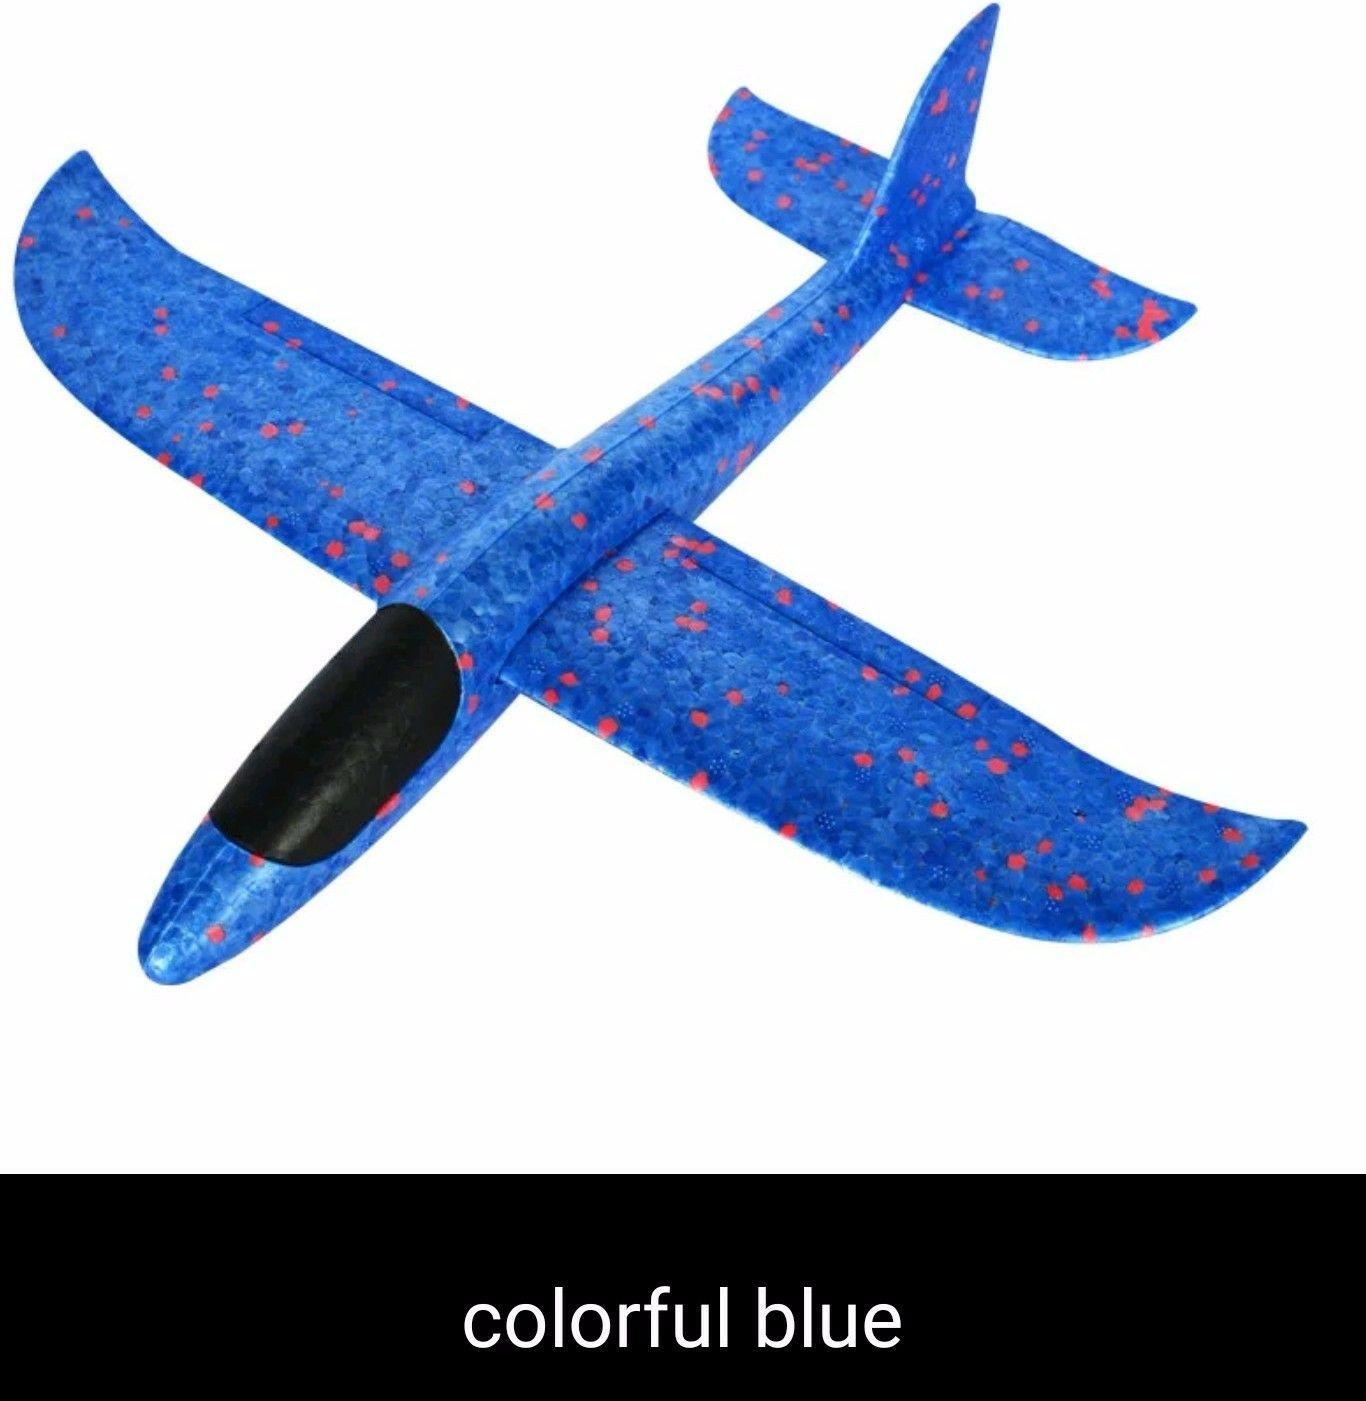 48cm Big Airplane made of Foam Plastic EPP Free Fly Glider AirPLANE Hand Throw The Plane Kids Planes Model Toy for Children